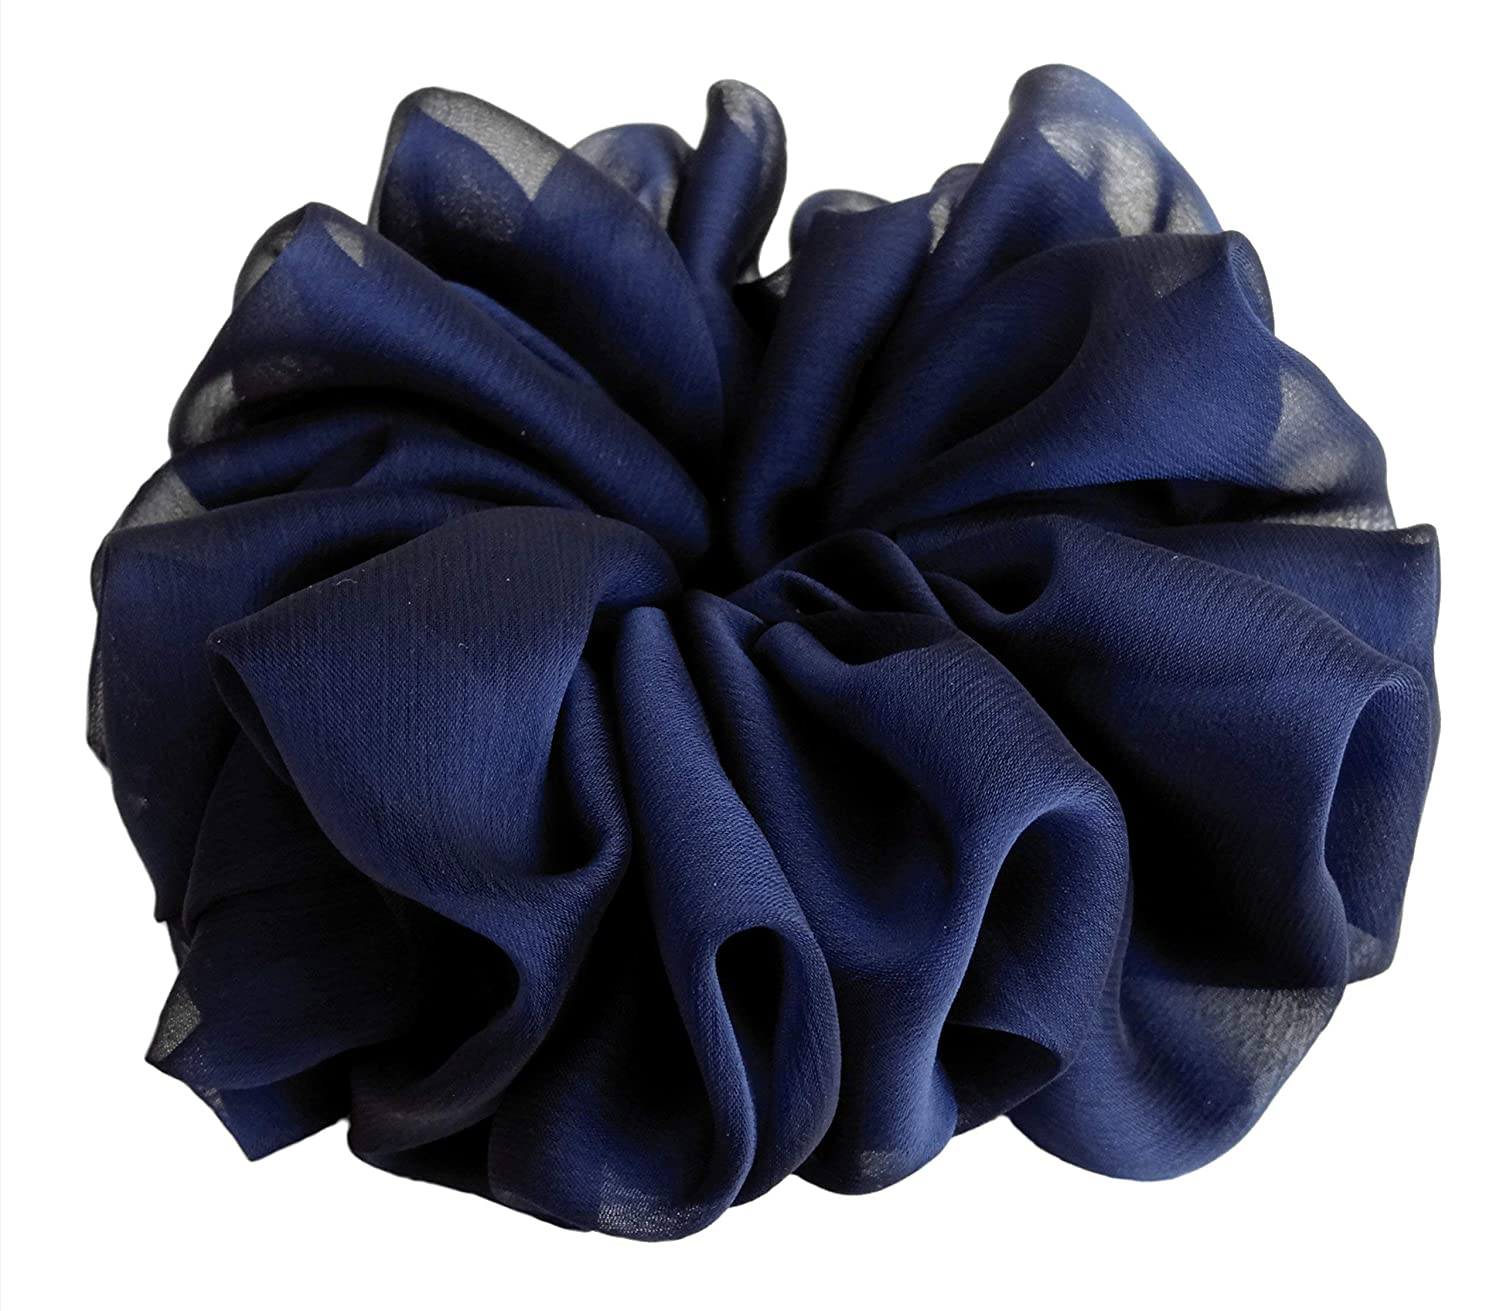 Midnight Navy Blue Large Chiffon Scrunchies Stylish Accessories Hair Band Ponytail Holder Teen Girls Women